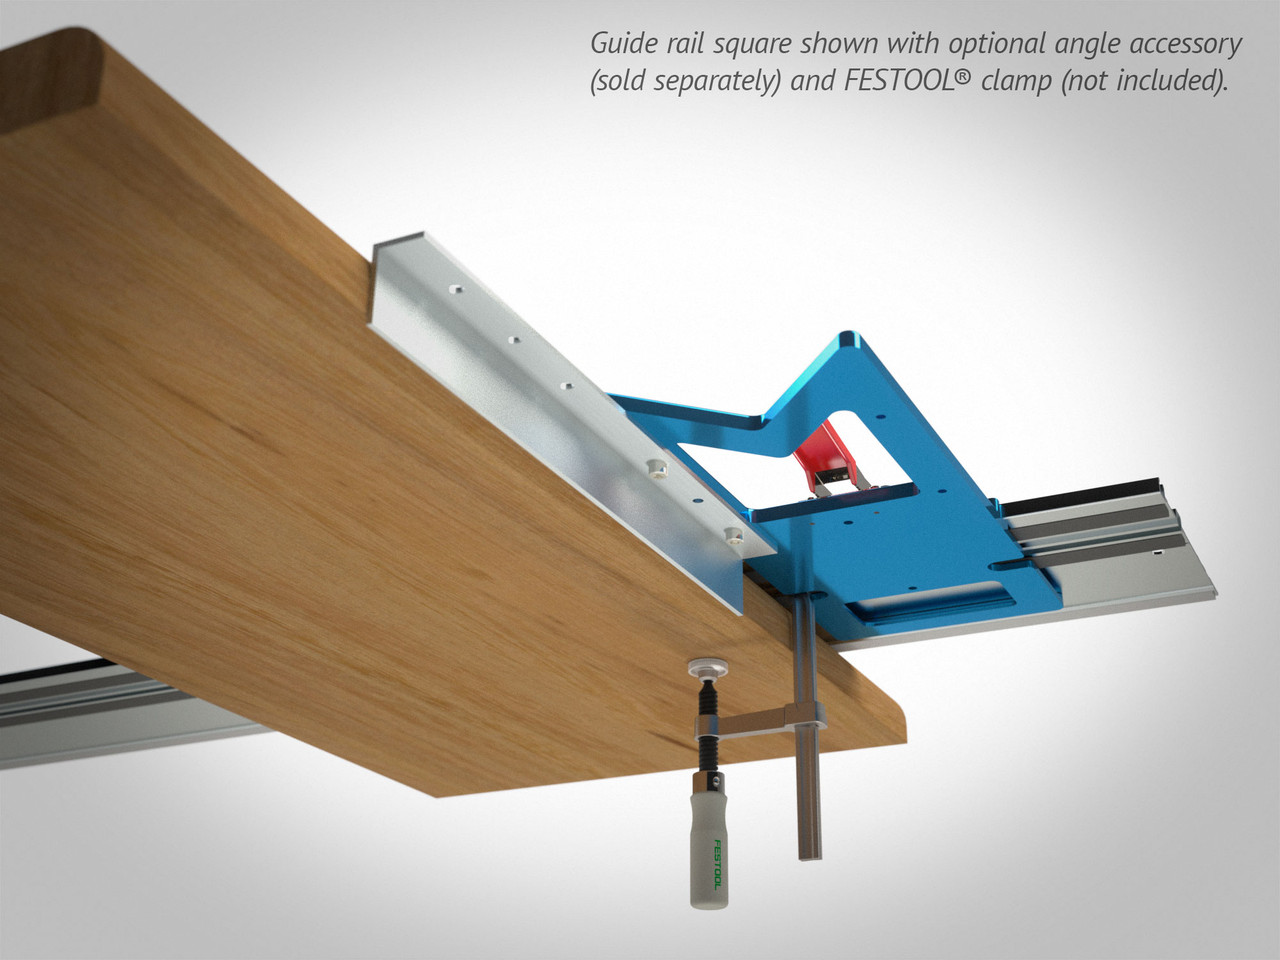 Notches in the guide rail squares accommodate the use of T-track clamps such as Festool's Screw Clamps and Quick Clamps. Shown here with optional Angle Accessory for extending the effective reference edge of your guide rail square.